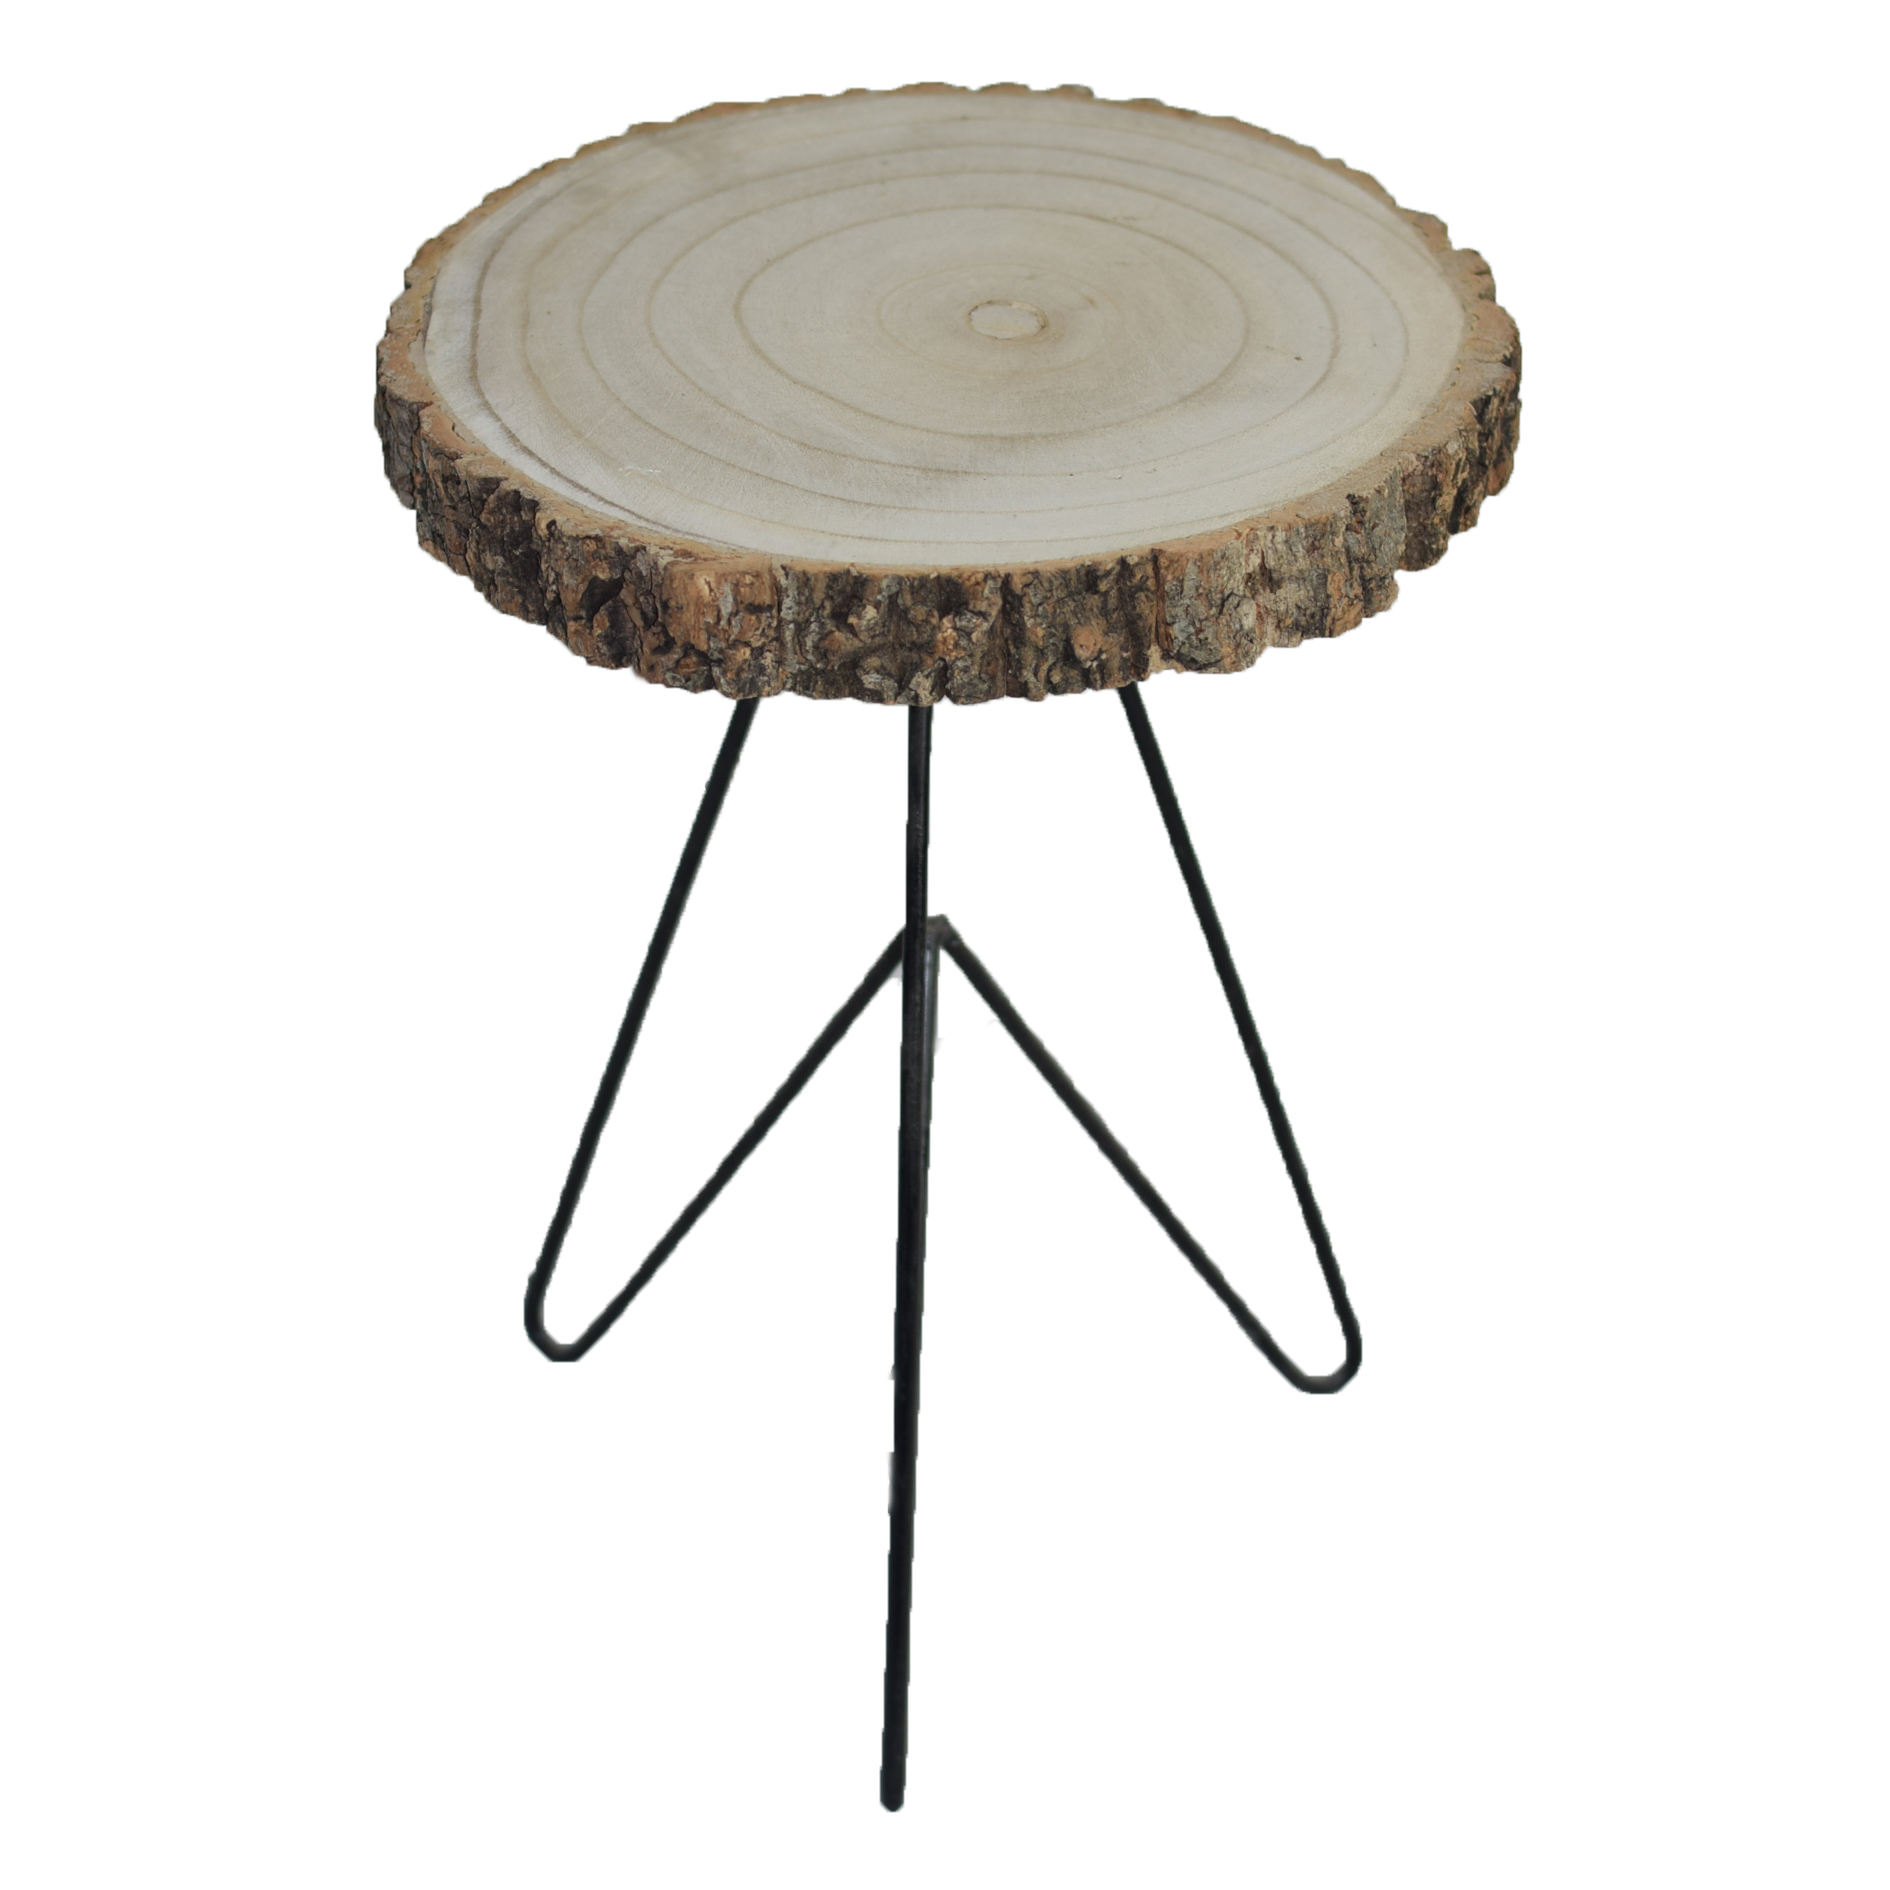 Hot Selling Good Quality Round Eound Solid Wood Side Table